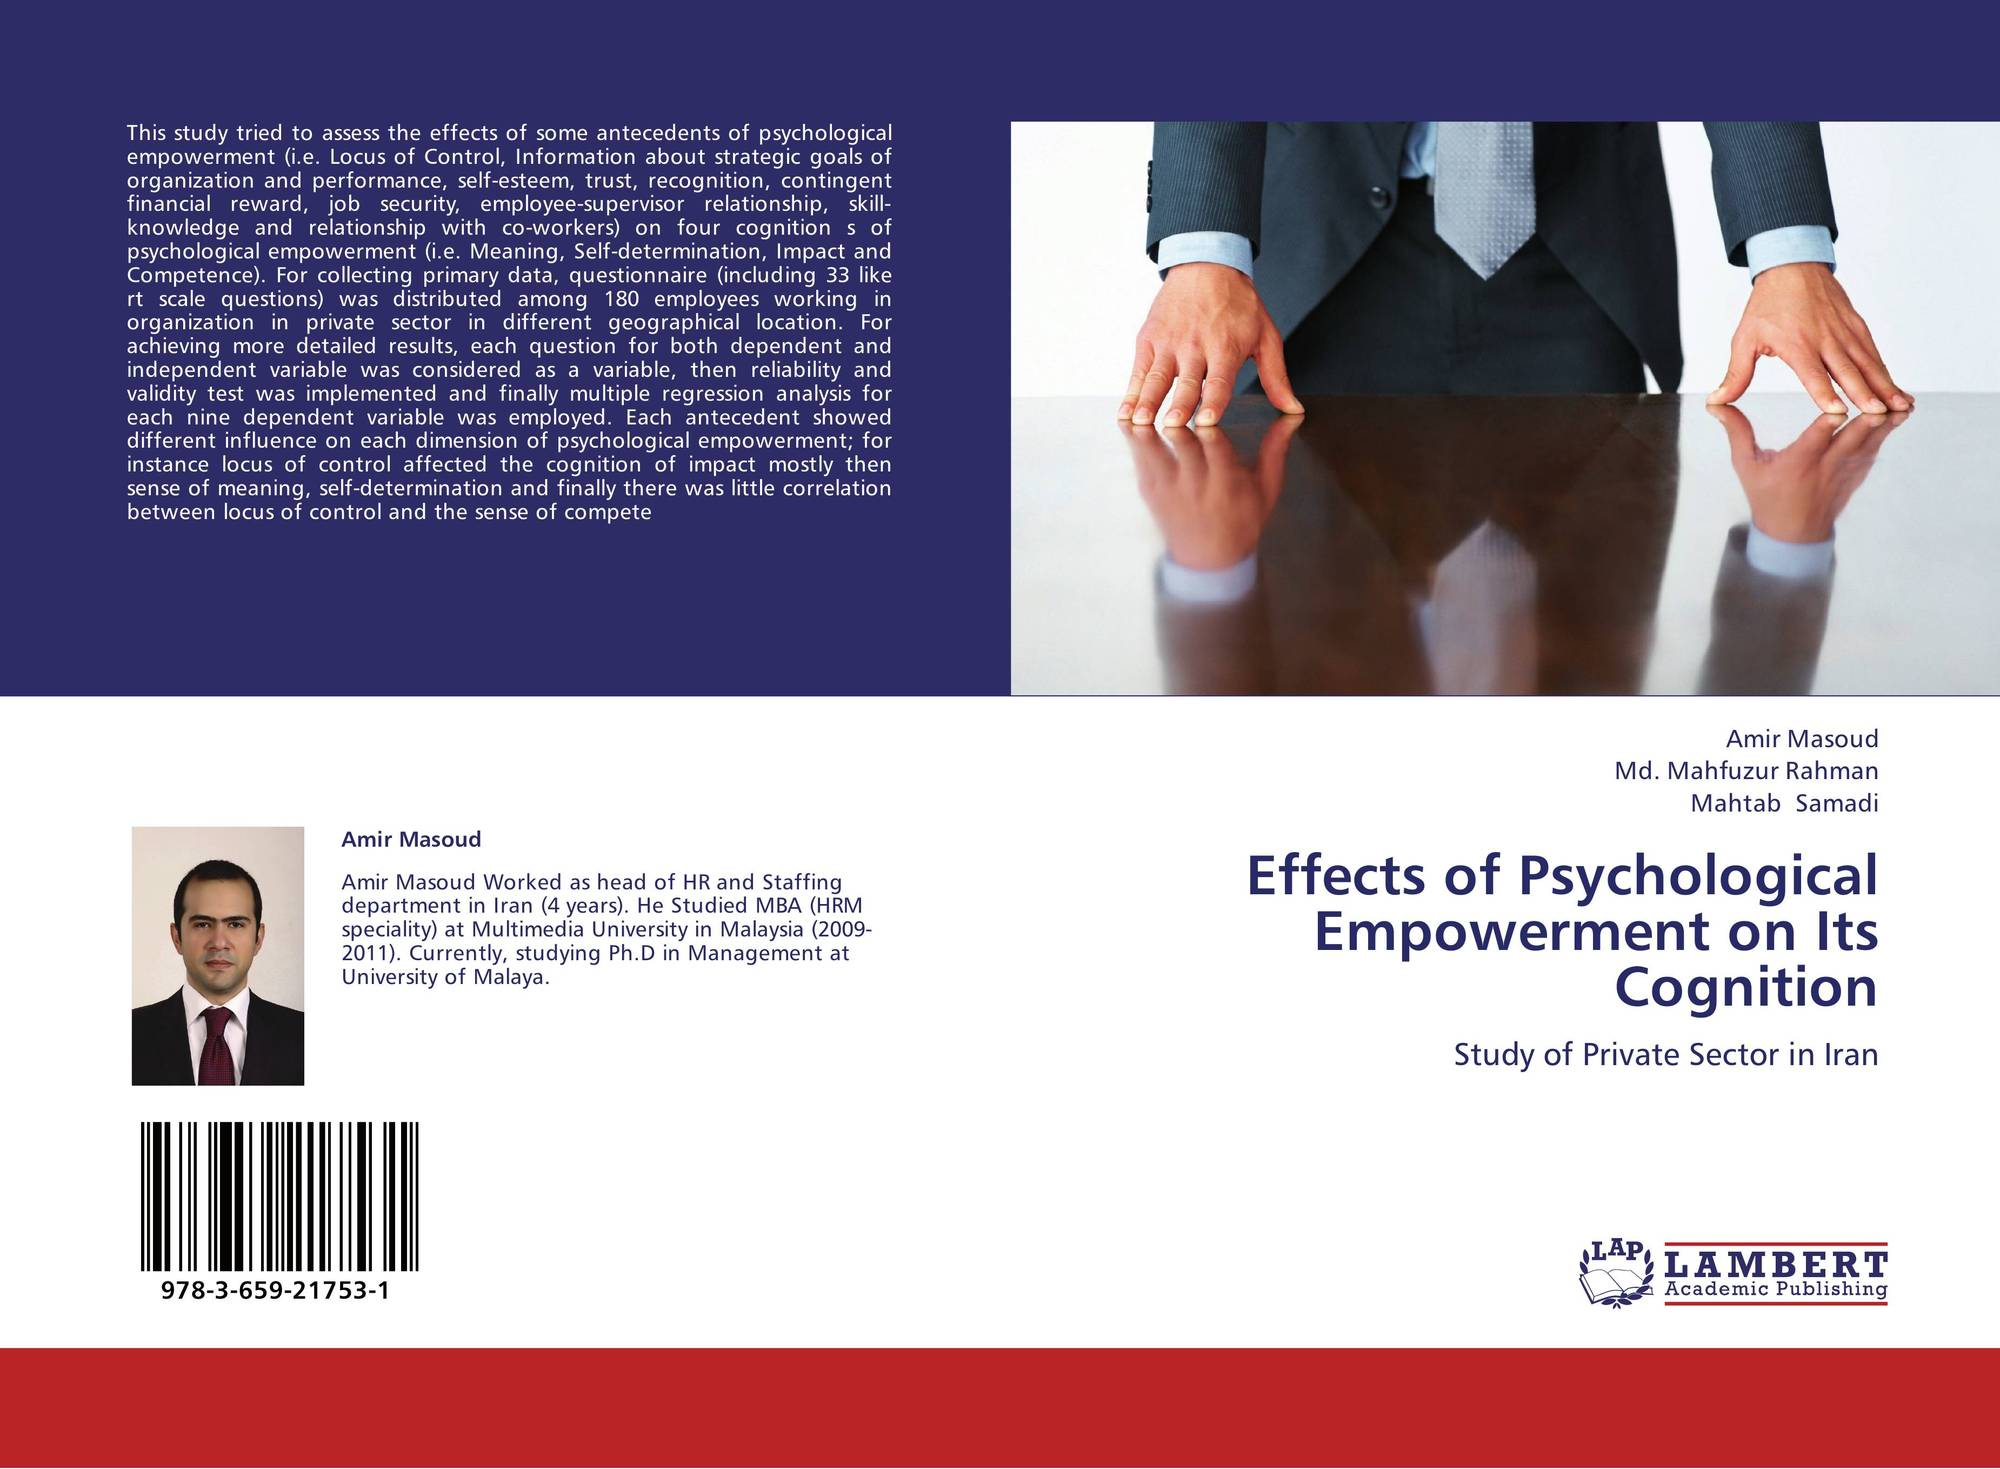 studying psychological empowerment The present study aims to propose and test an integrative model that considers  the mediating effects of generation y employees' psychological empowerment.